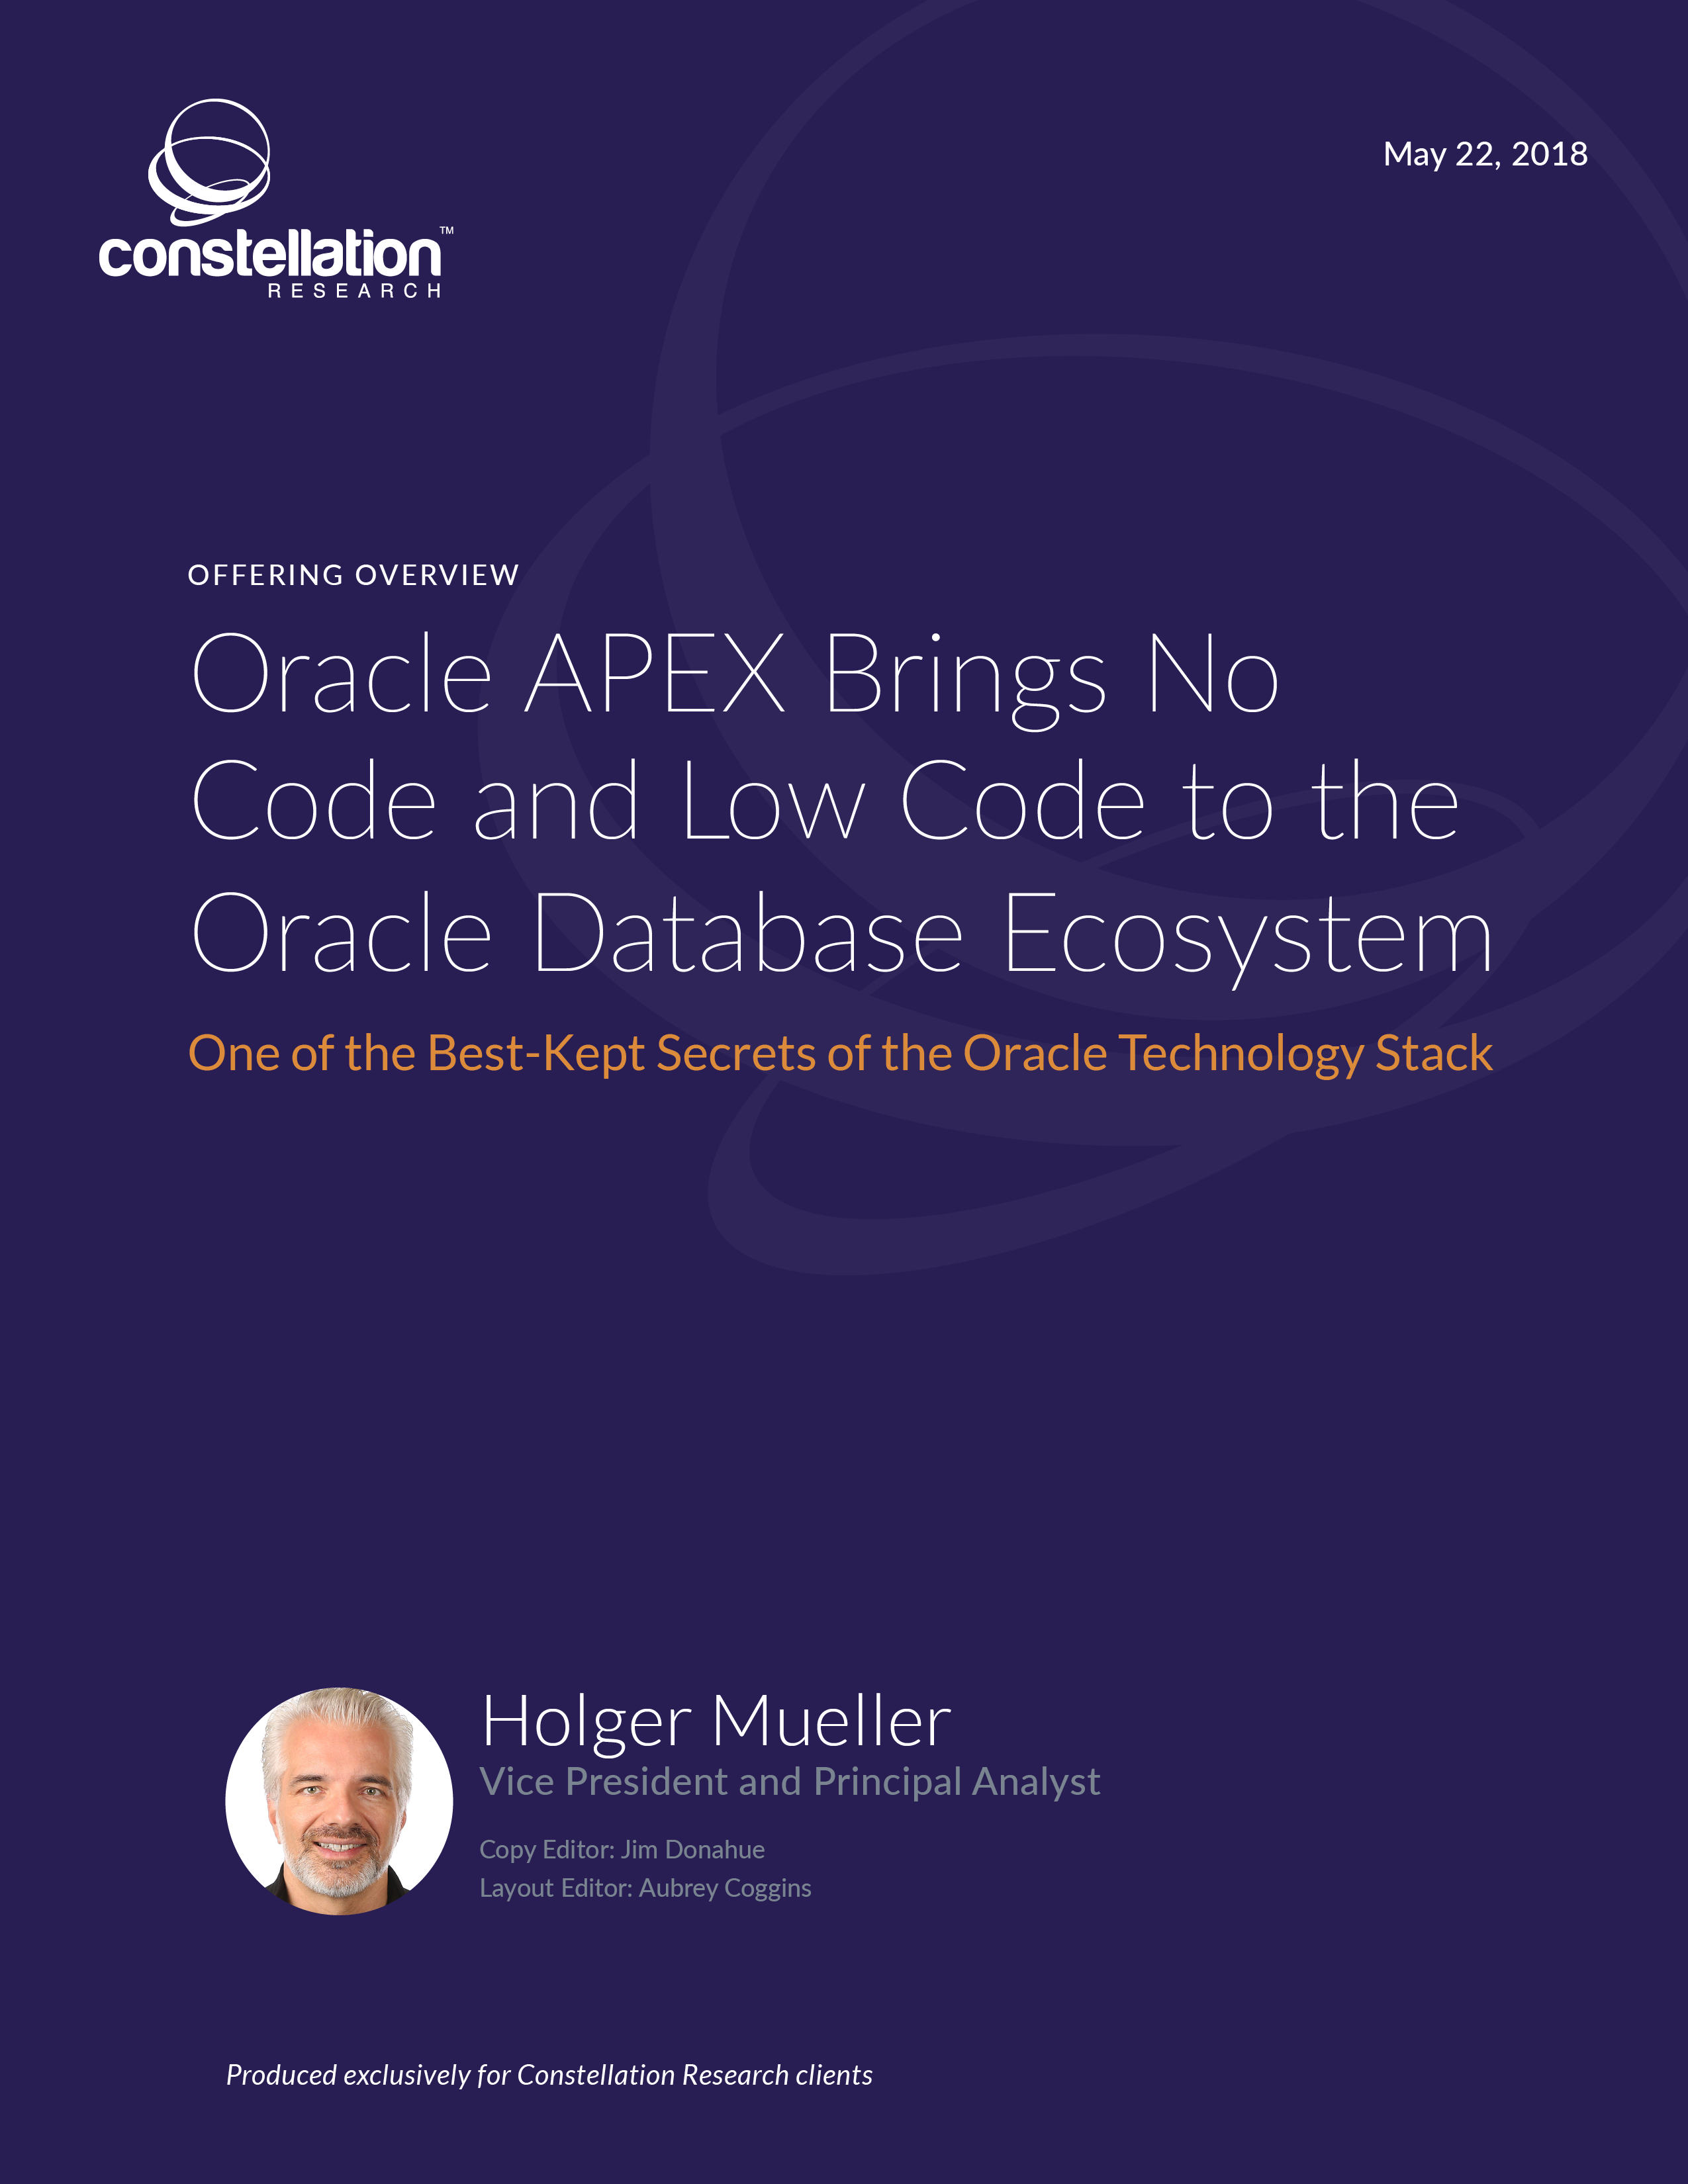 Oracle APEX Offering Overview